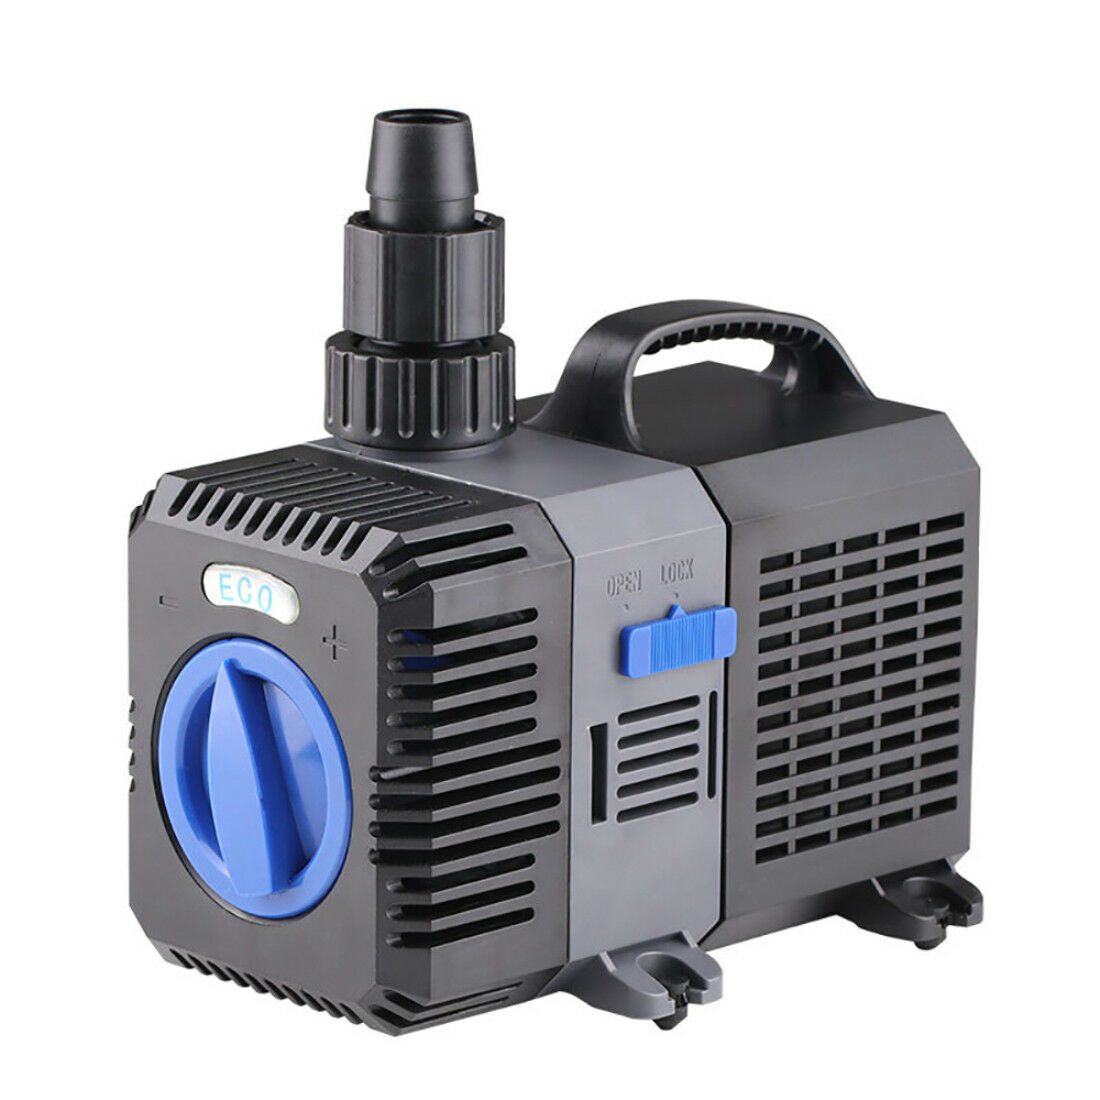 SUNSUN Submersible Pump, CTP-3800 20W Water Pump Non-Adjustable Fish Aquarium